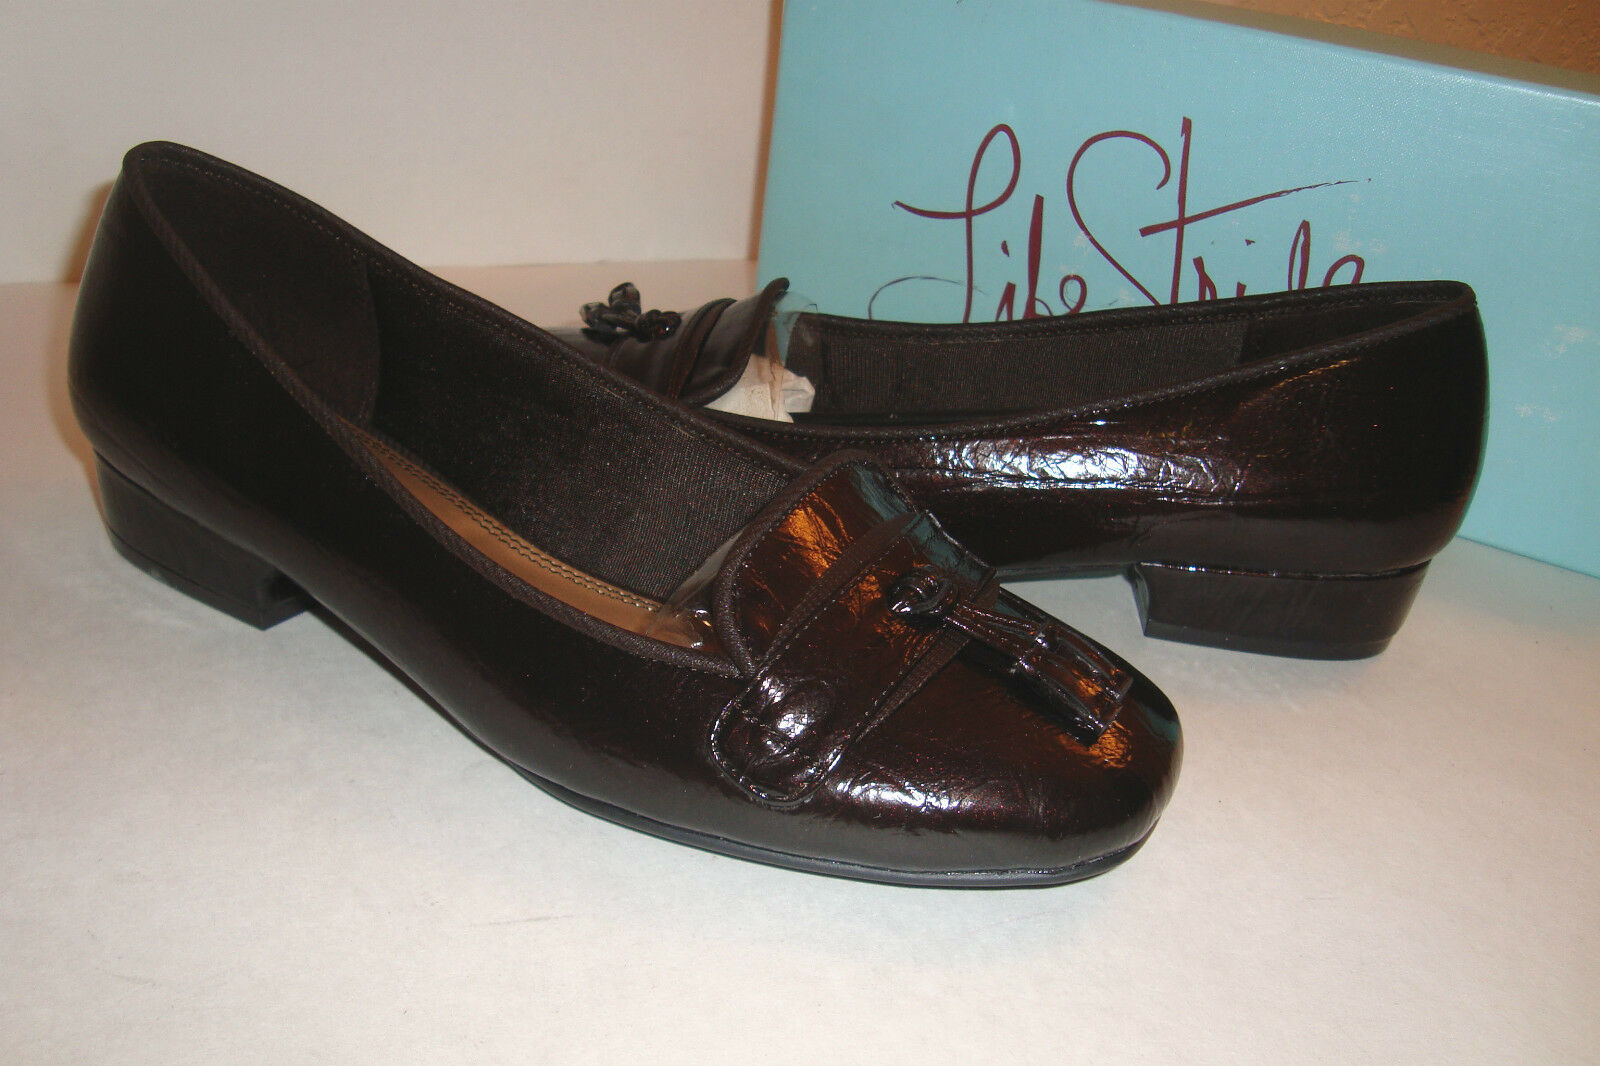 Life Stride LifeStride Womens NWB Quadrille Gio Patent Brown shoes 6.5 Wide NEW